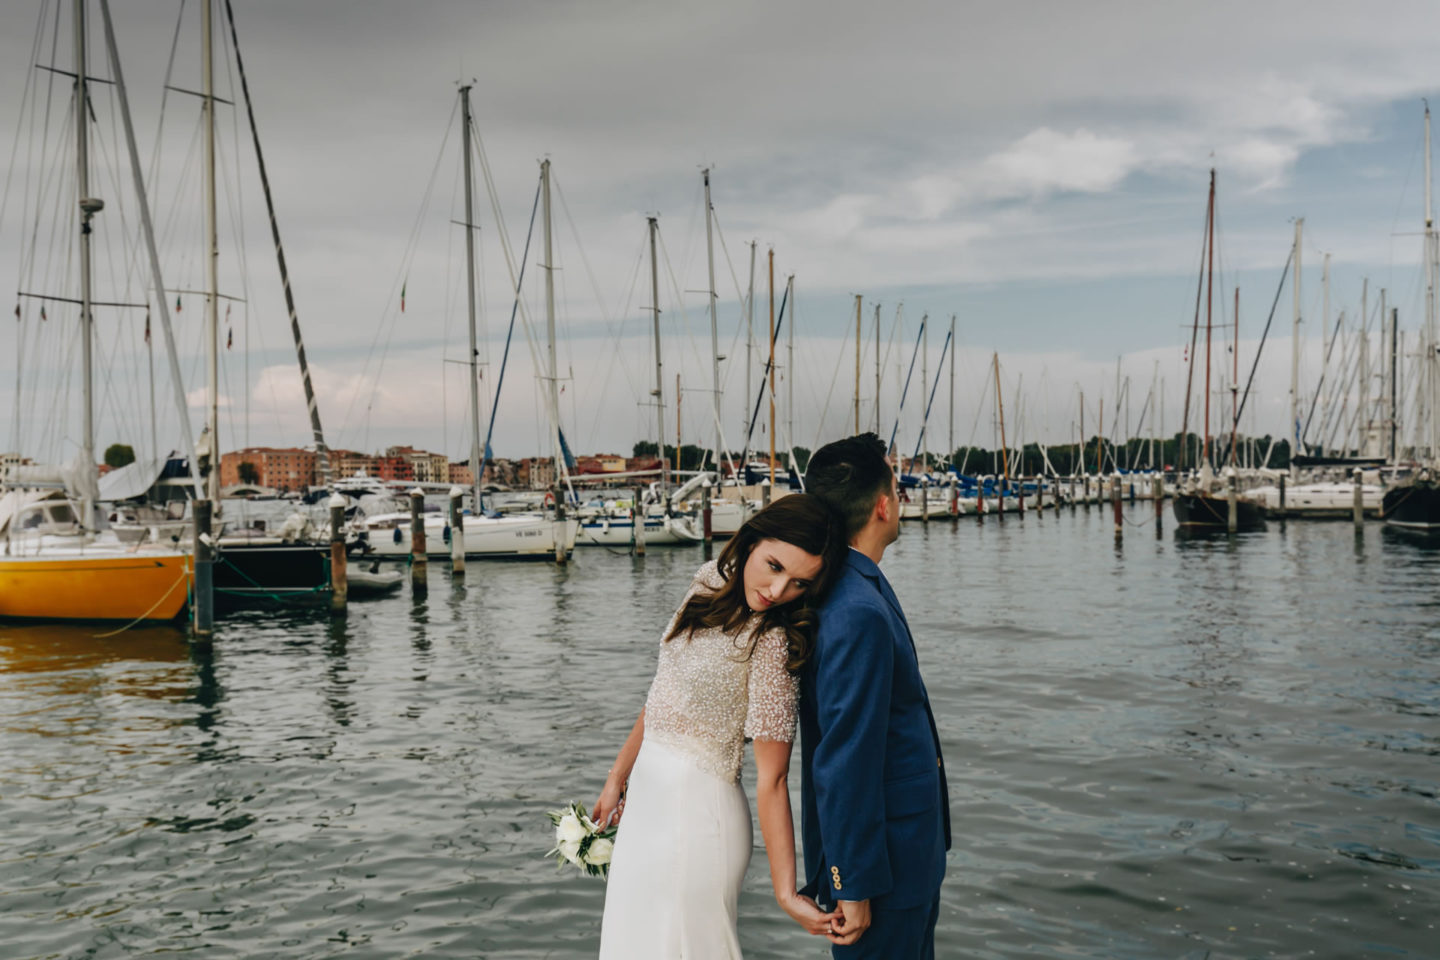 Romantic elopement in Venice :: Luxury wedding photography - 30